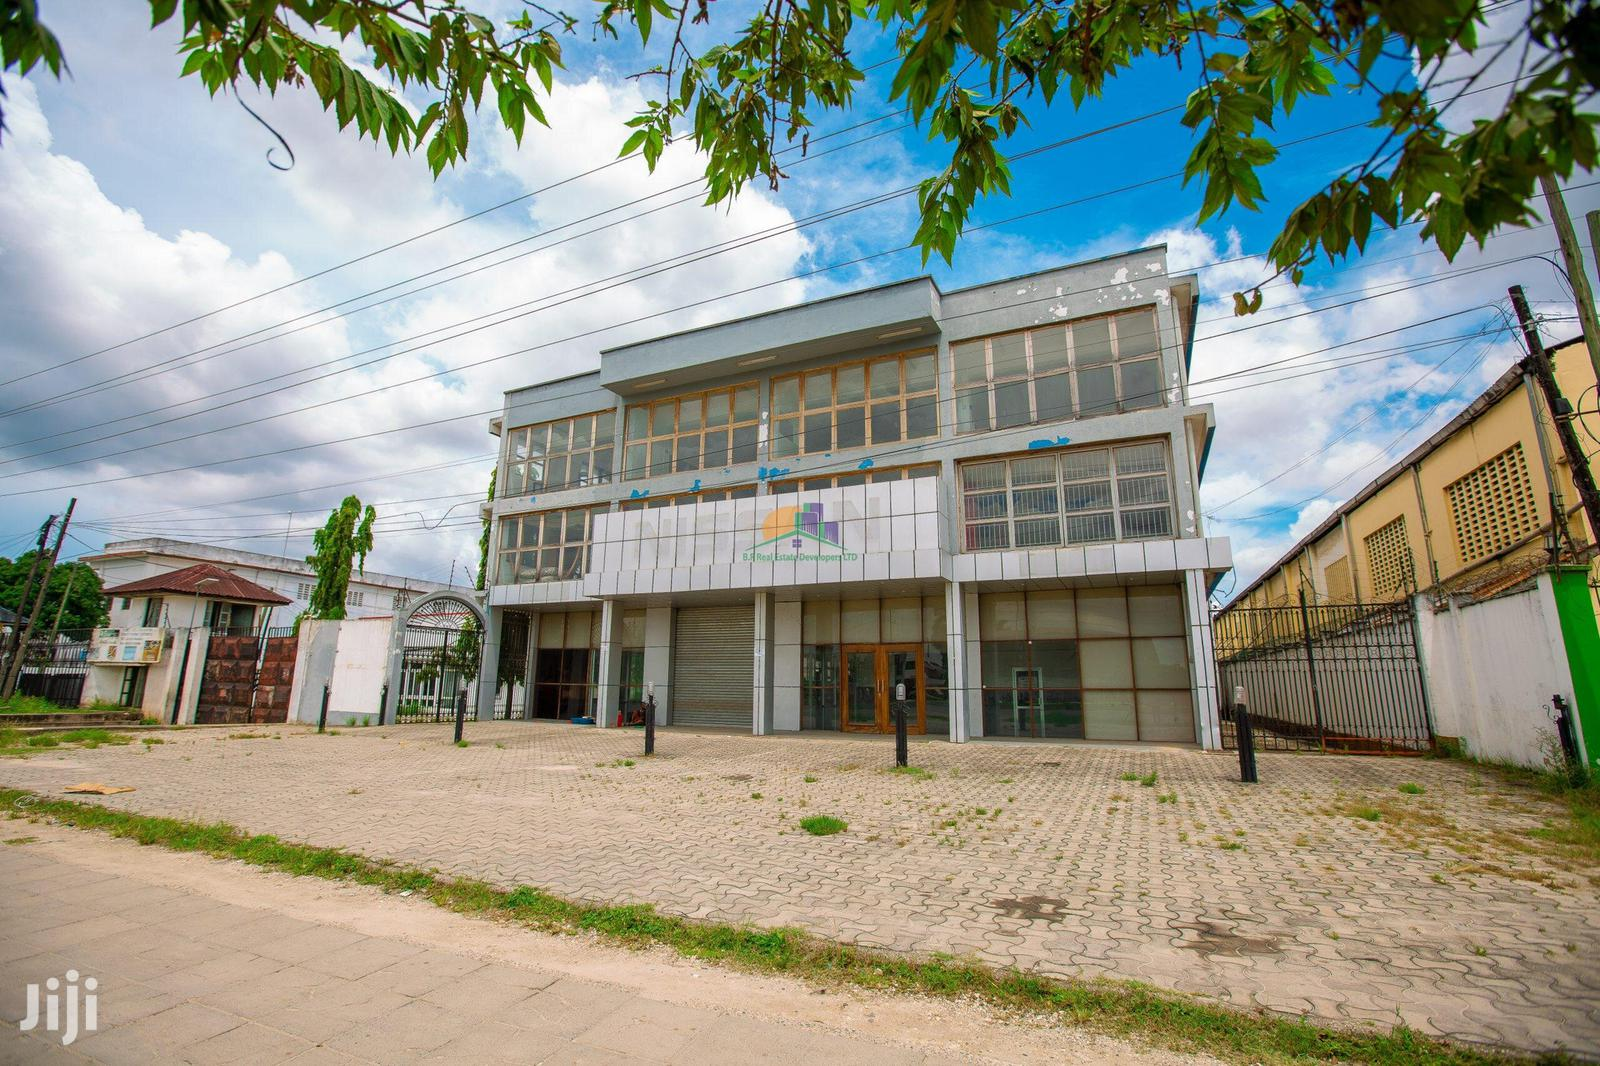 Yard and Office for Sale in Dar Es Salaam, Tanzania